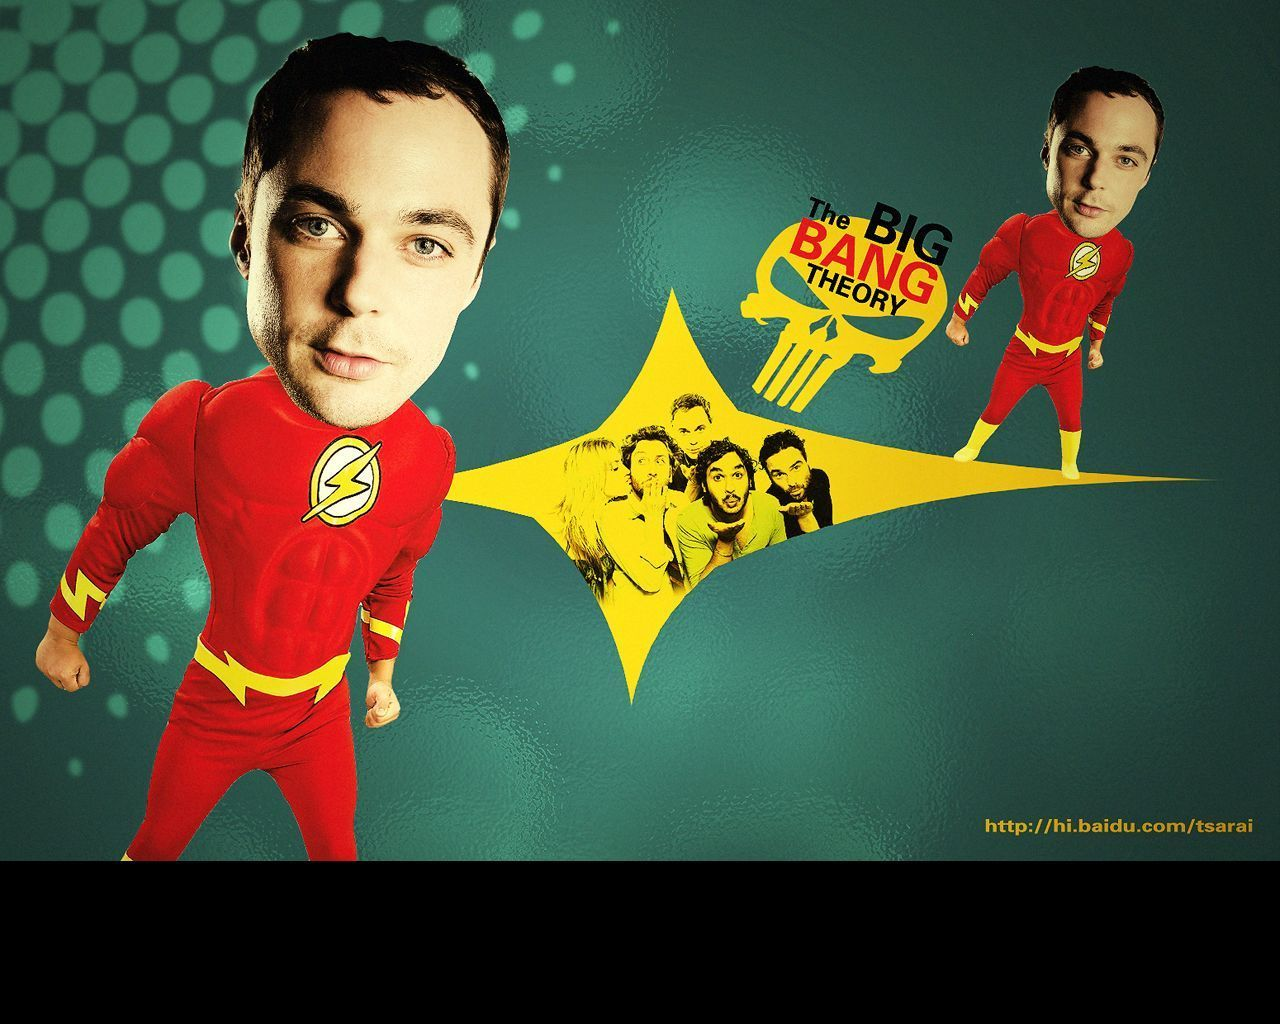 http://3.bp.blogspot.com/_E26Ndy_oKVc/TVBMNvW0D6I/AAAAAAAABOI/By0CrQV2SSU/s1600/shelly-The-flash-is-coming-sheldon-cooper-9279469-1280-1024.jpg